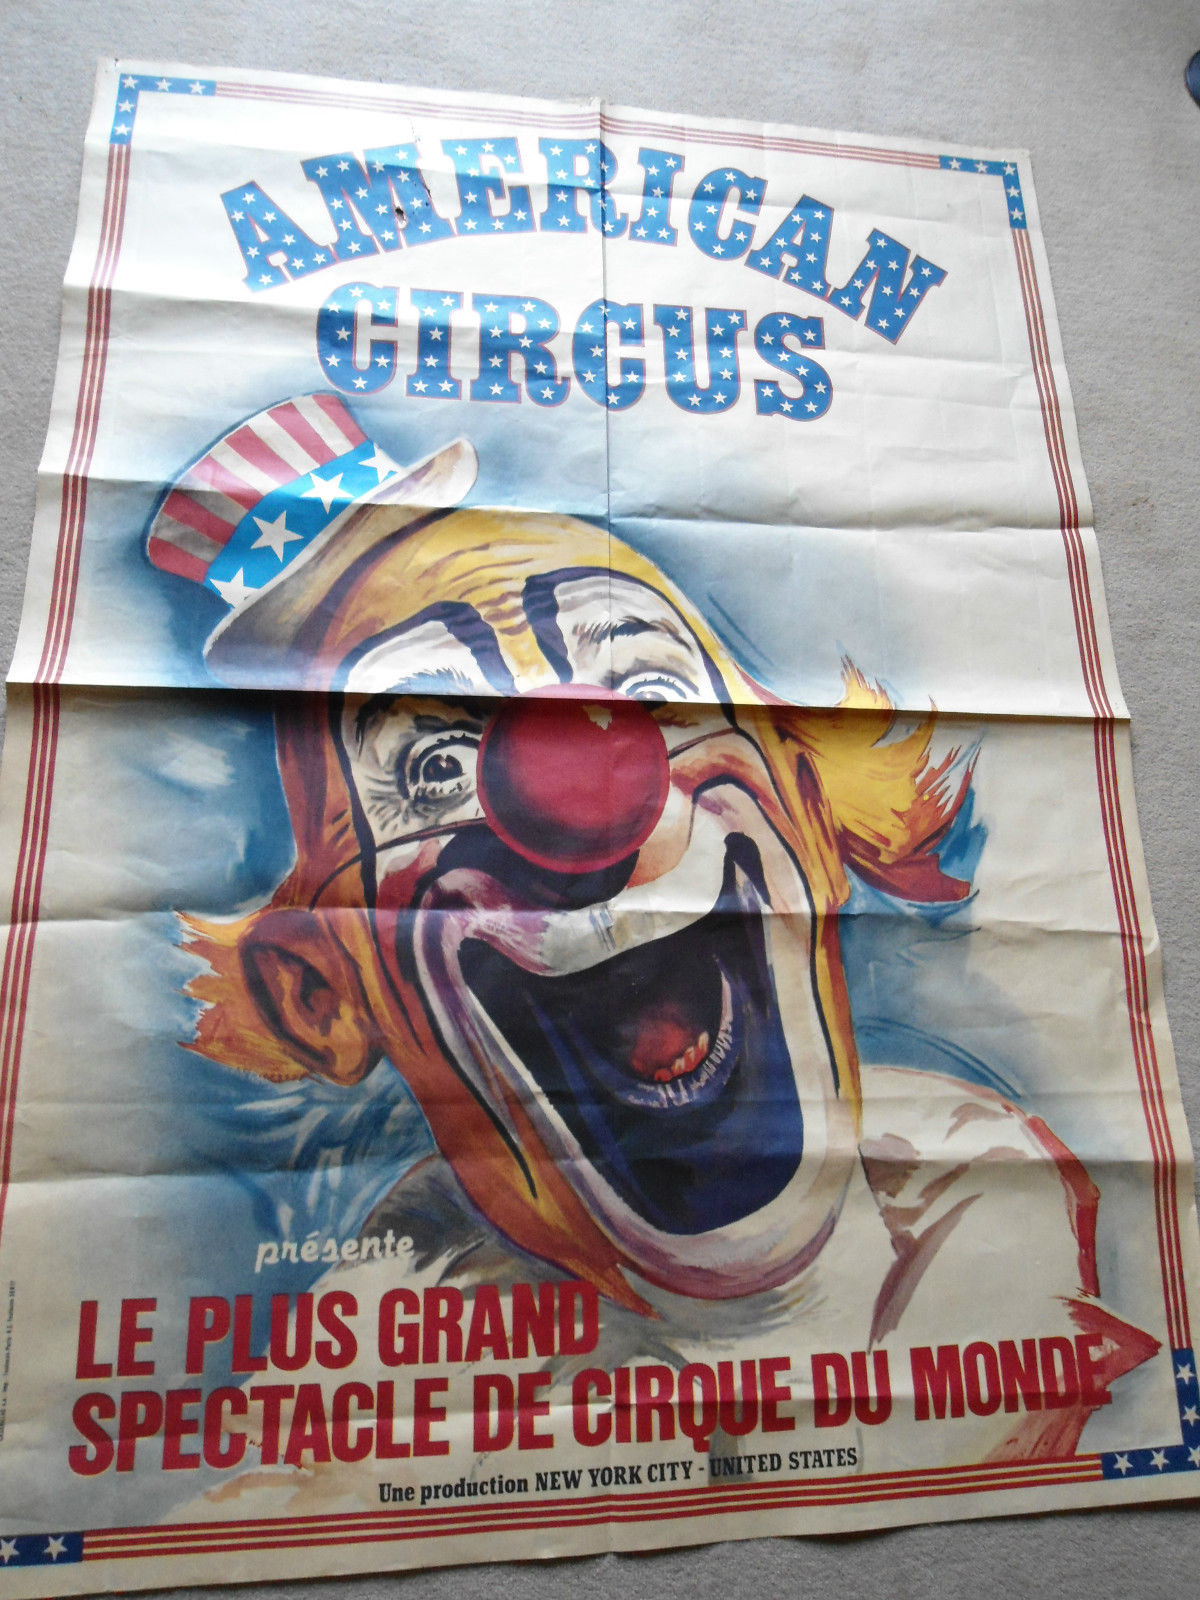 Vintage American Circus Poster £150  www.ebay.co.uk